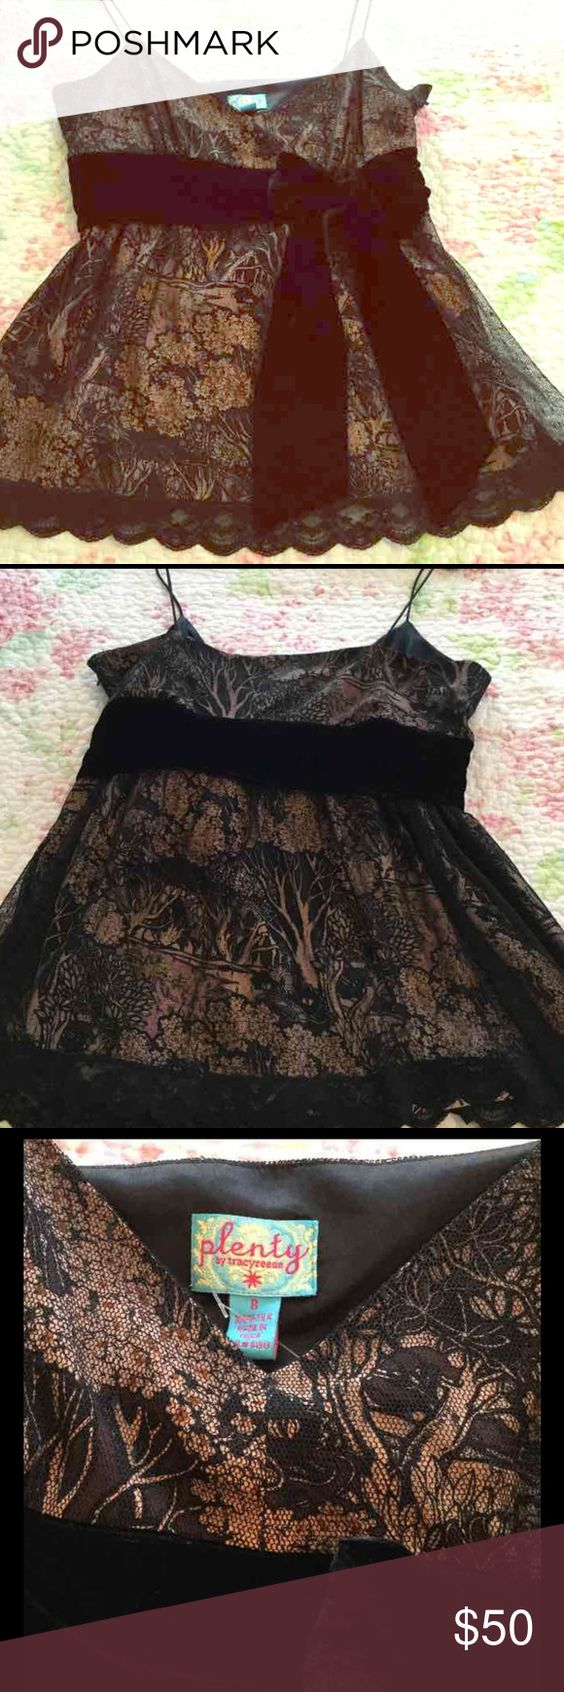 """Gorgeous Formal Top w Bohemian Flare Never worn!! 100% Silk with a gorgeous lining and black lace with scalloped trip overlay.  Black velvet tie sash and hidden side zipper.  Just lovely and designed by Tracy Reese for Anthropology.  Her """"Plenty"""" clothing line is fun yet sophisticated . Tracy Reese Tops Camisoles"""